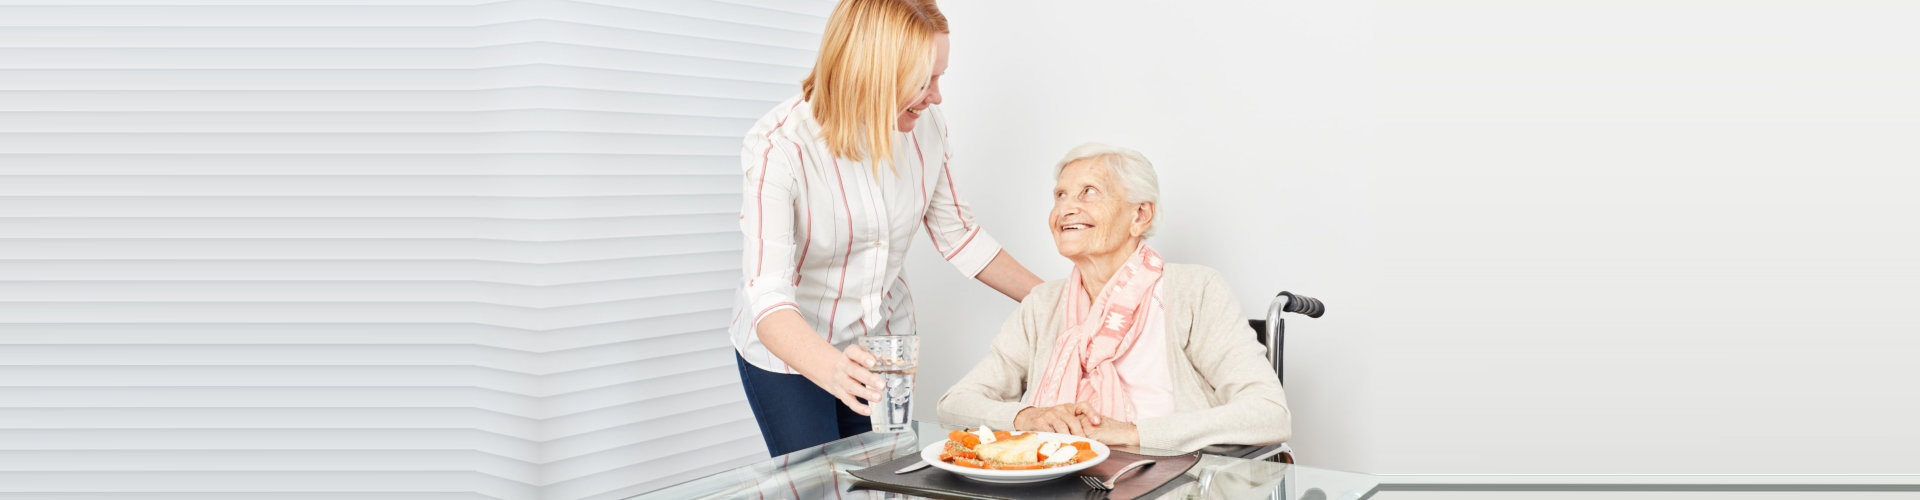 caregiver assisting senior woman in her meal